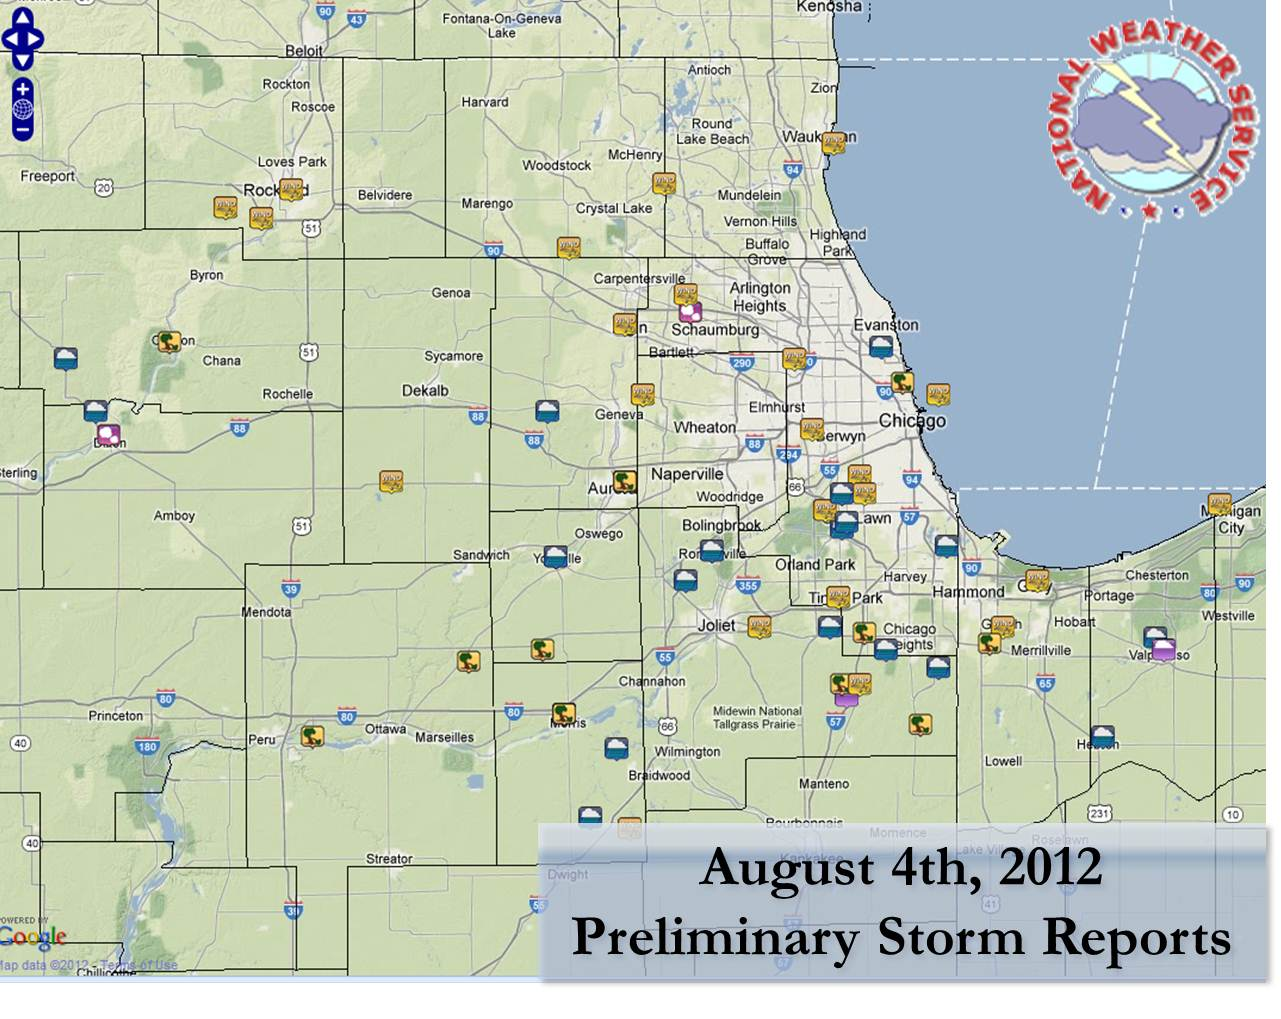 Preliminary Storm Reports